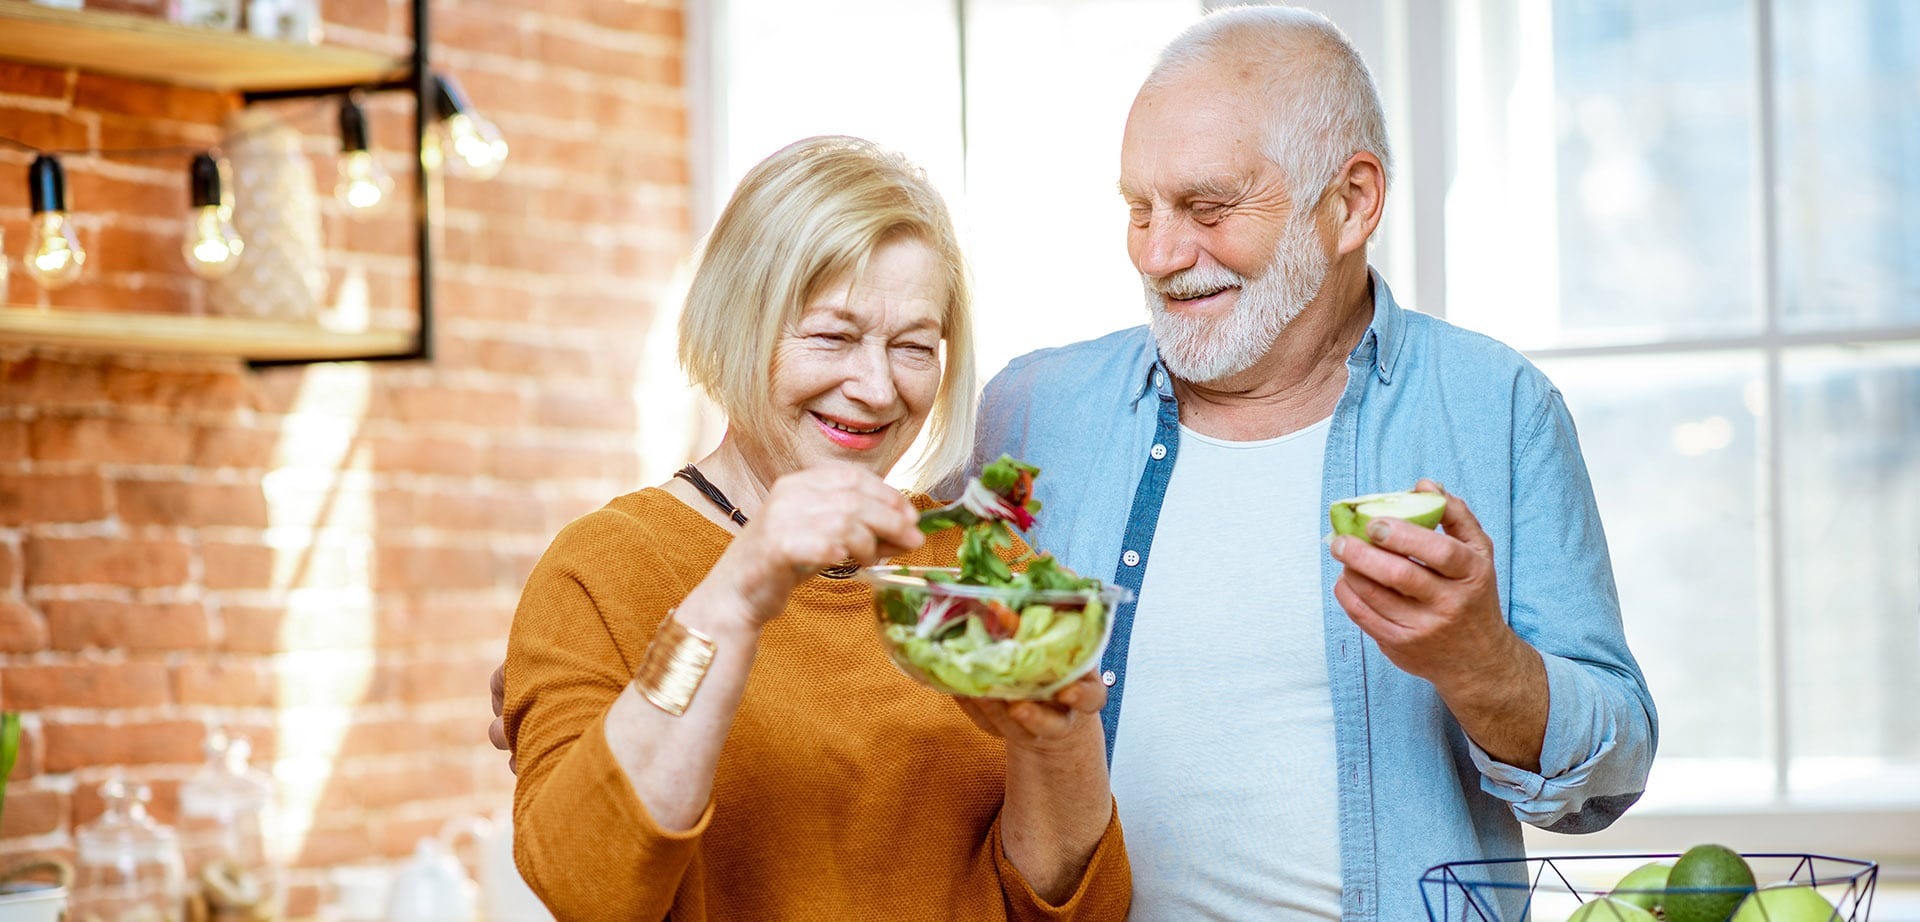 Image for Dieting Advice for Elderly People